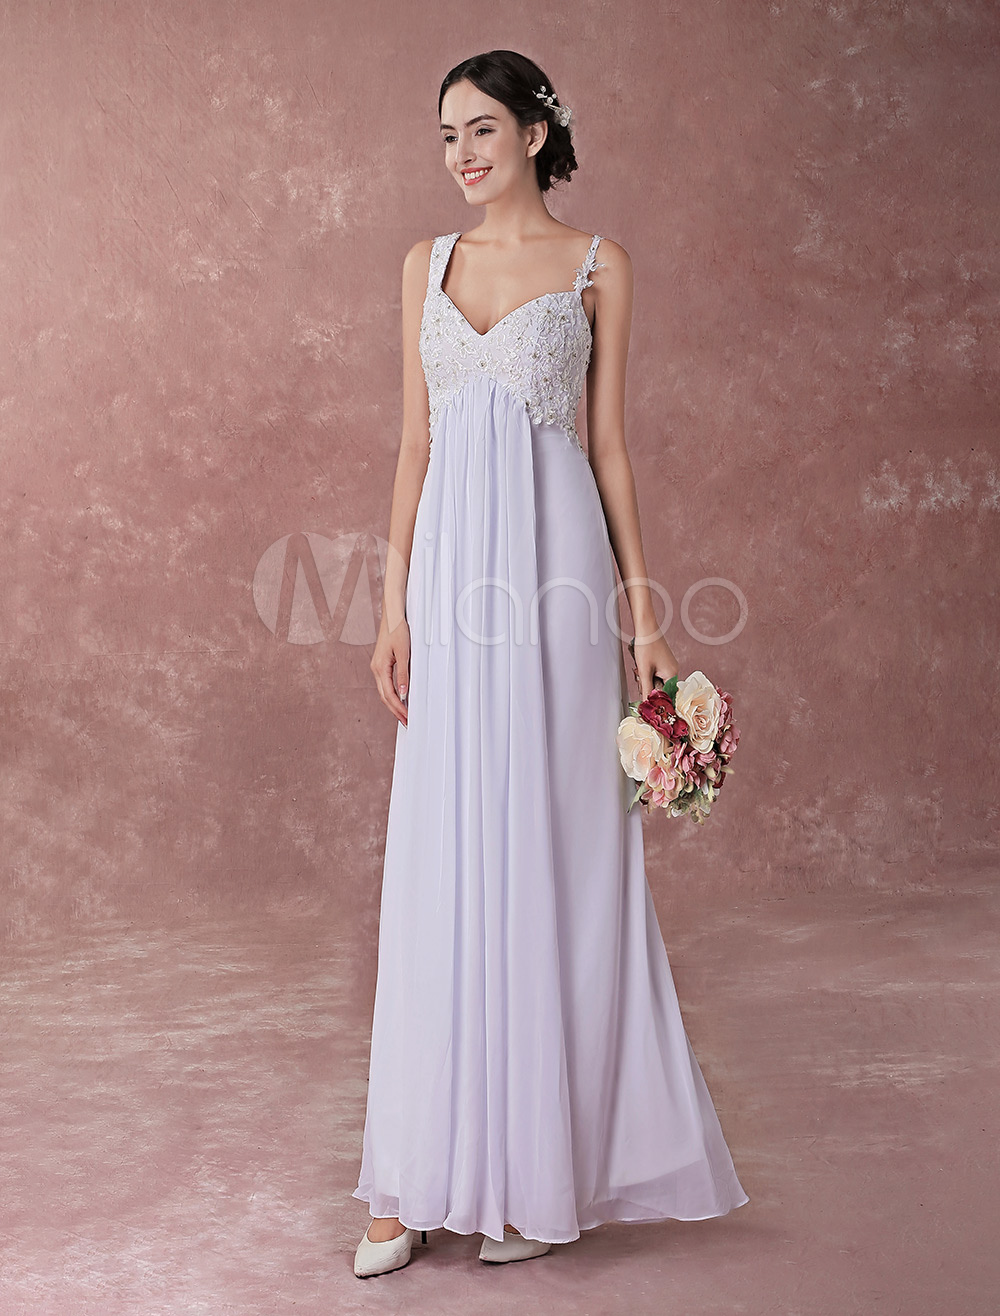 2d6ebaaeb366 ... Spaghetti Straps Empire Waist Floor Length Bridal Dress-. 12. 45%OFF.  Color:Ivory